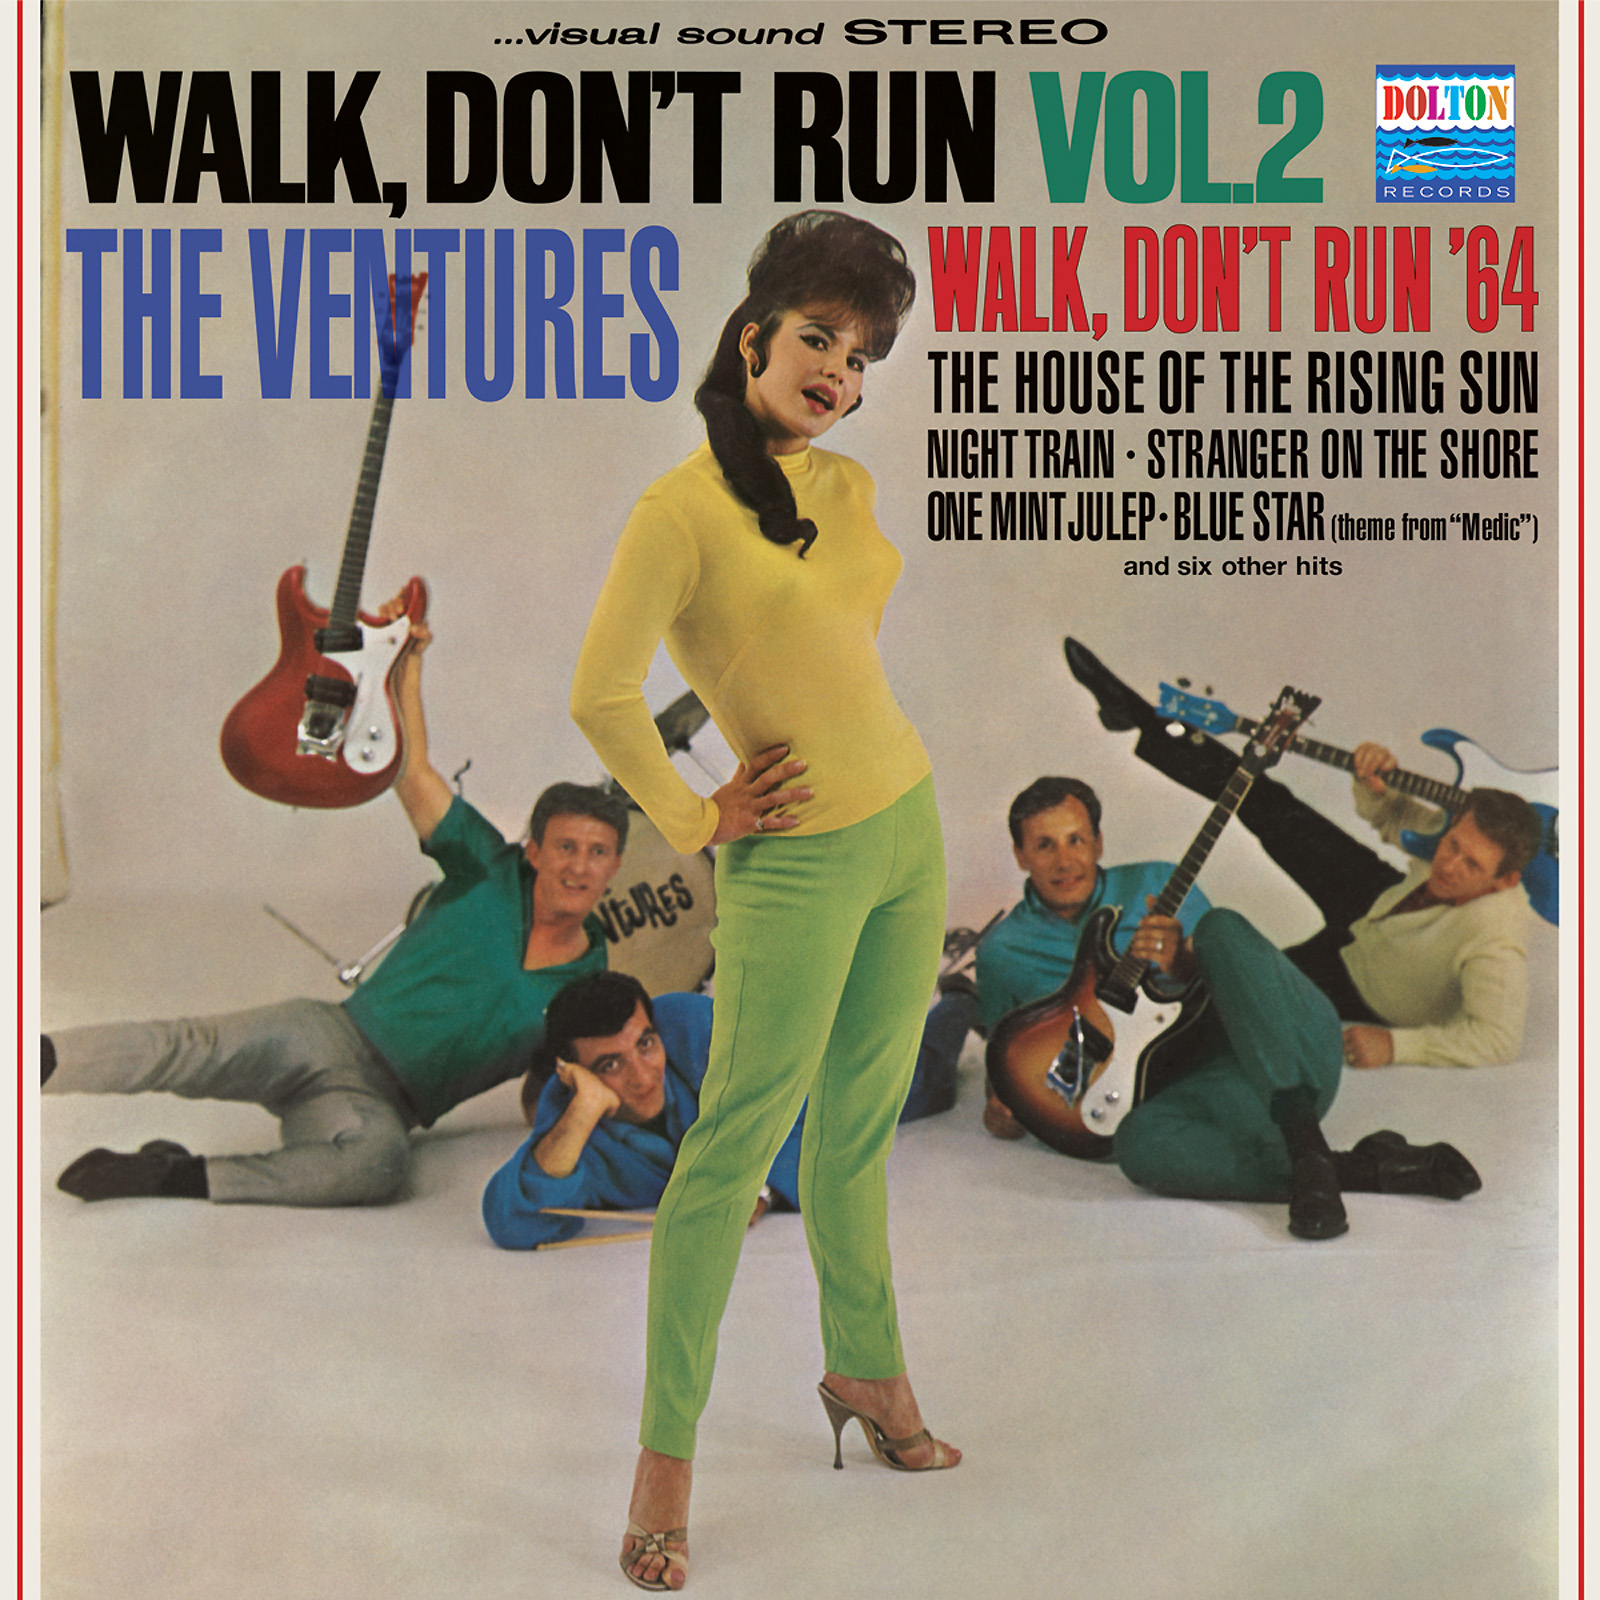 Ventures, The - Walk, Dont Run Vol. 2 - CD